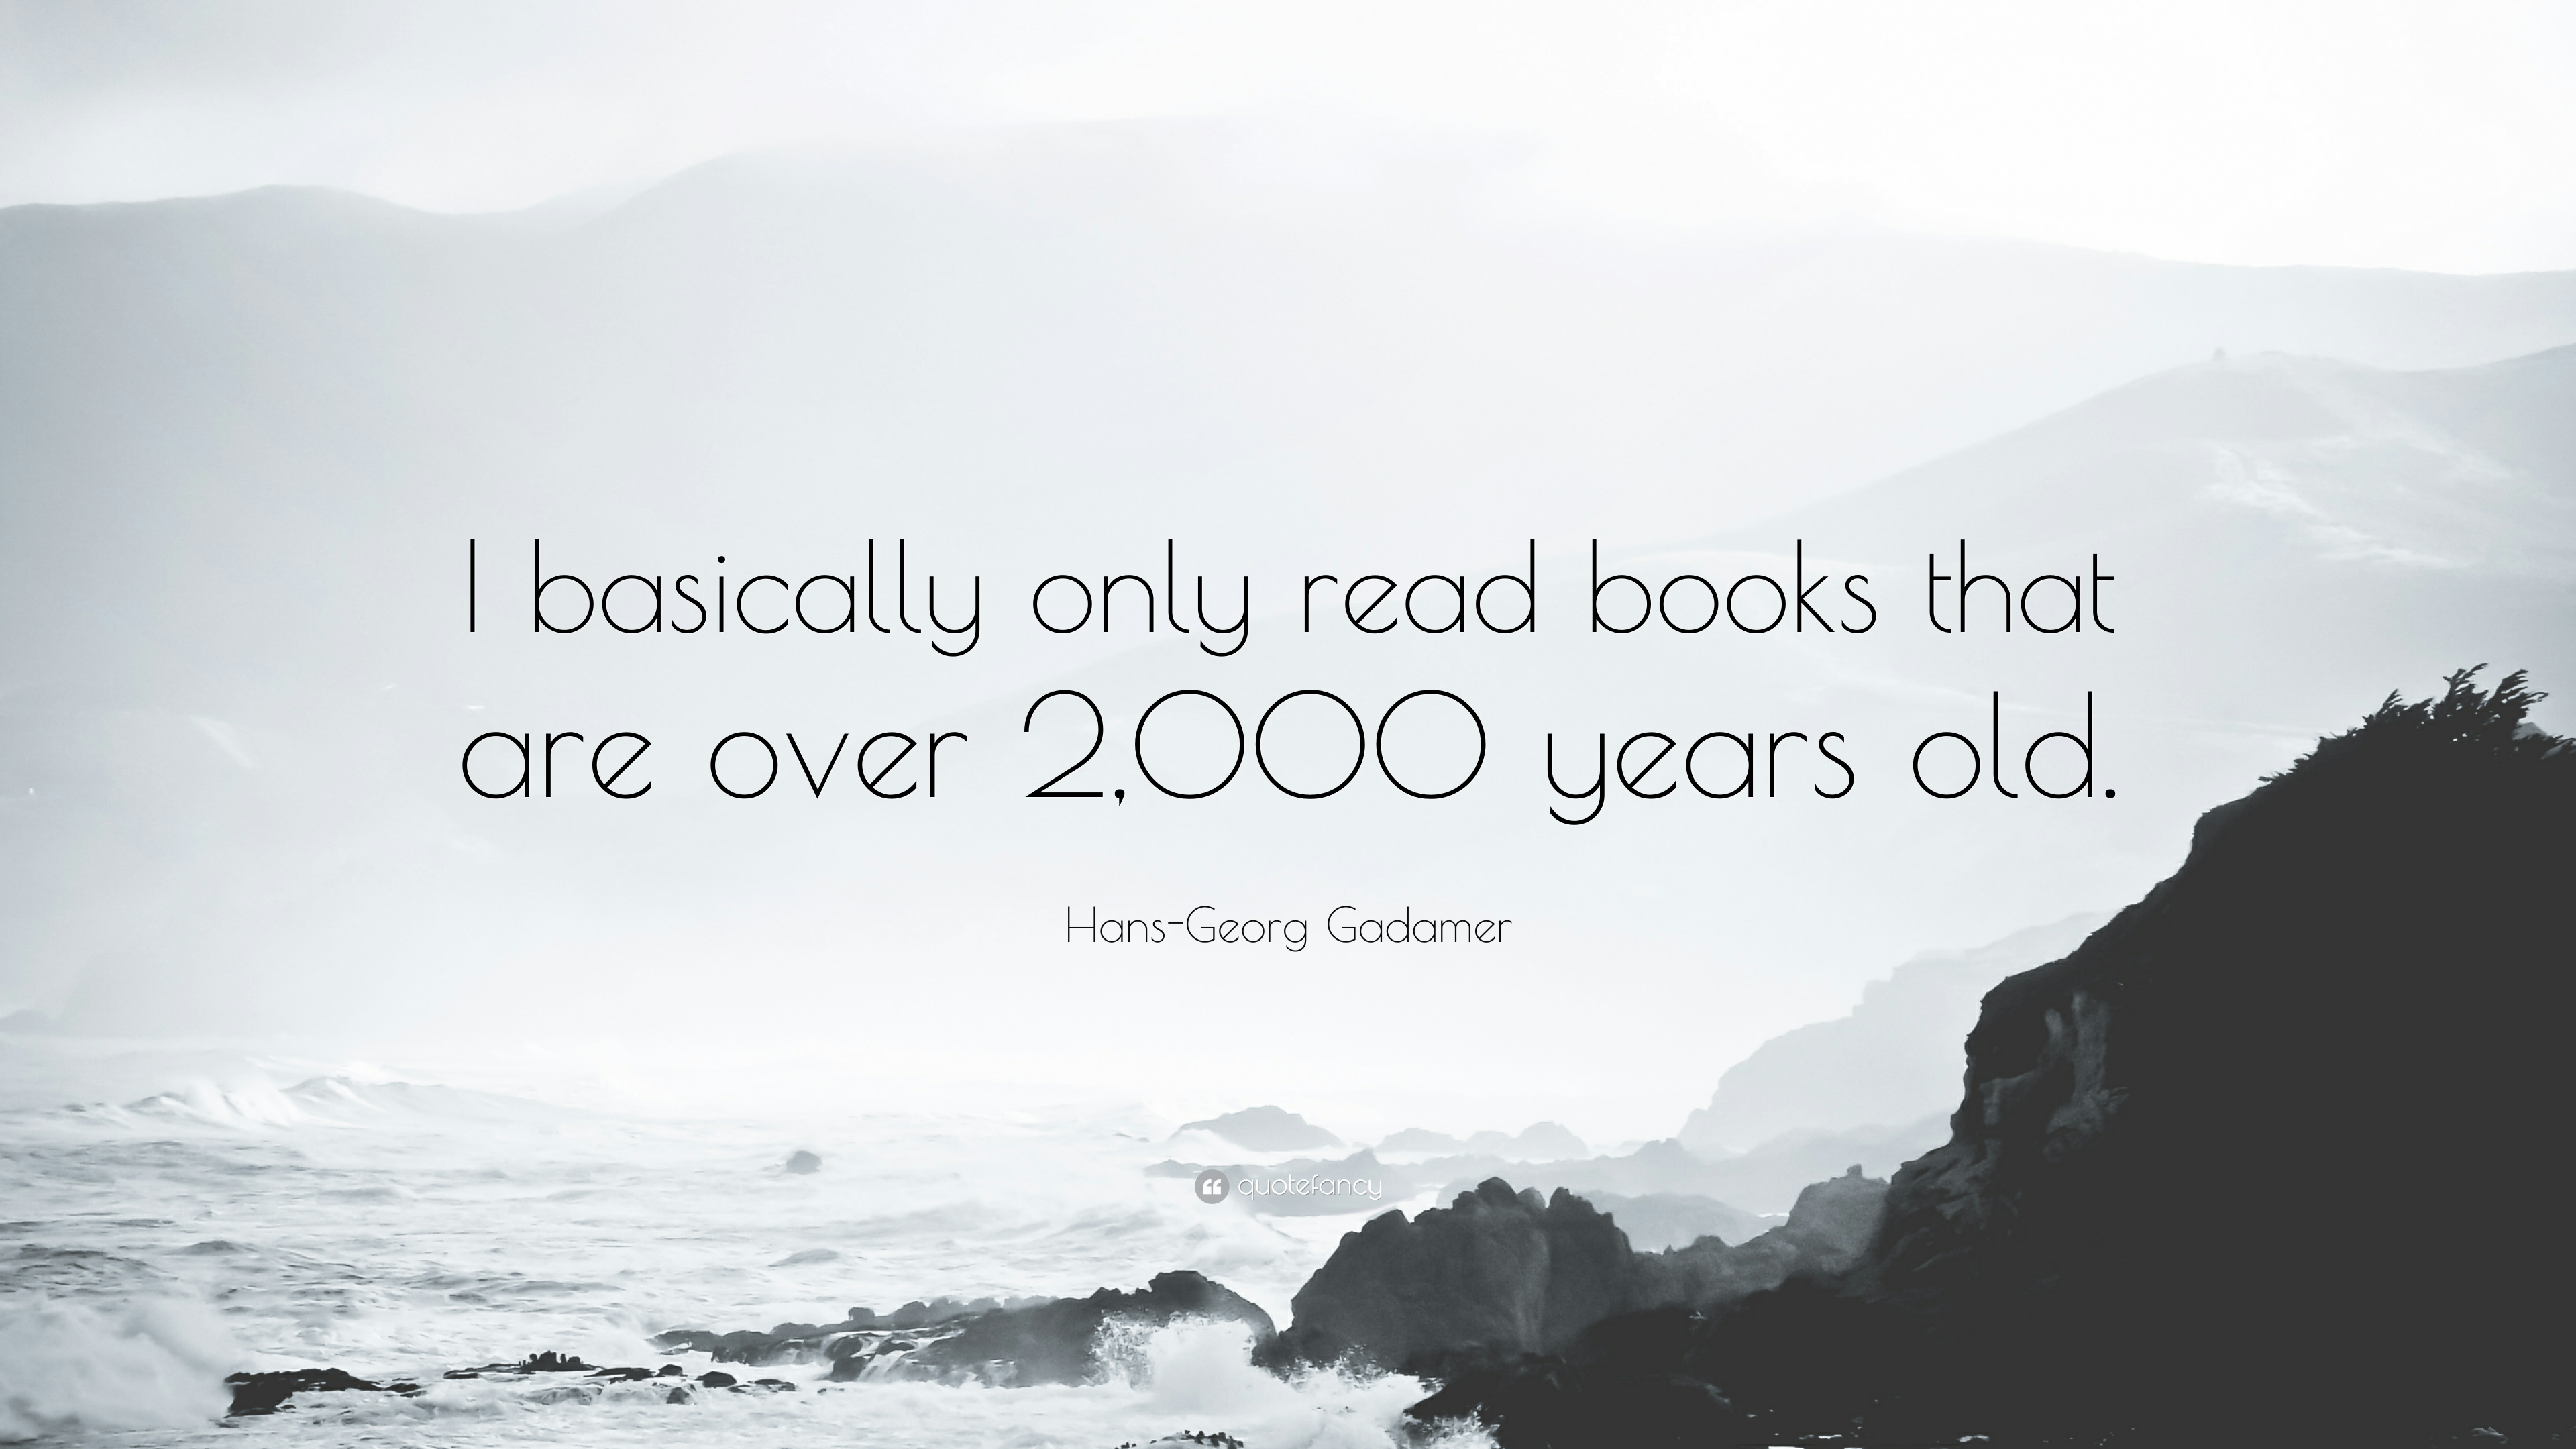 Hans Georg Gadamer Quote: U201cI Basically Only Read Books That Are Over 2,000